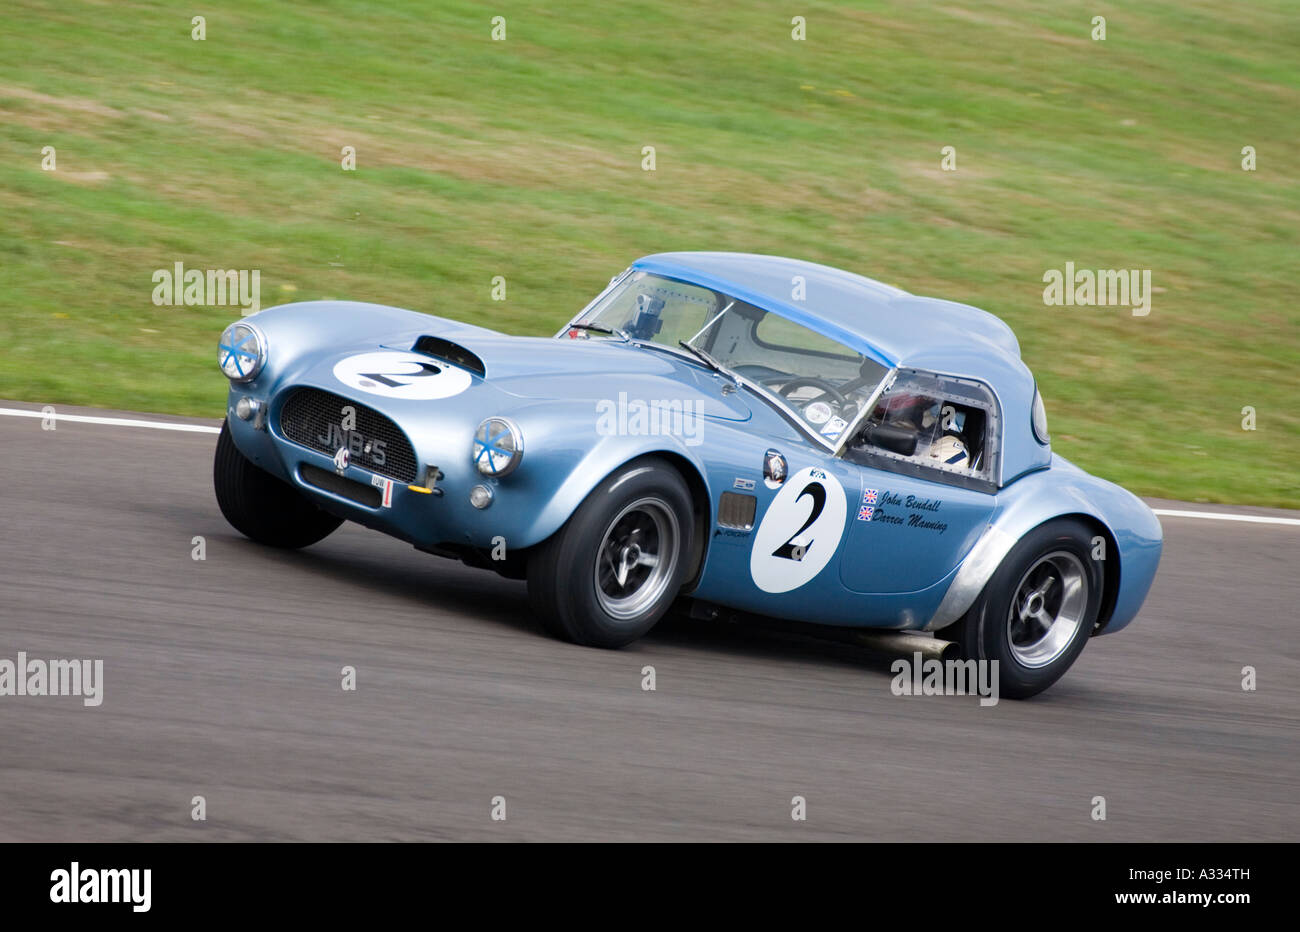 1962 AC Cobra during the Royal Automobile Club TT Celebration race at Goodwood Revial, Sussex. - Stock Image